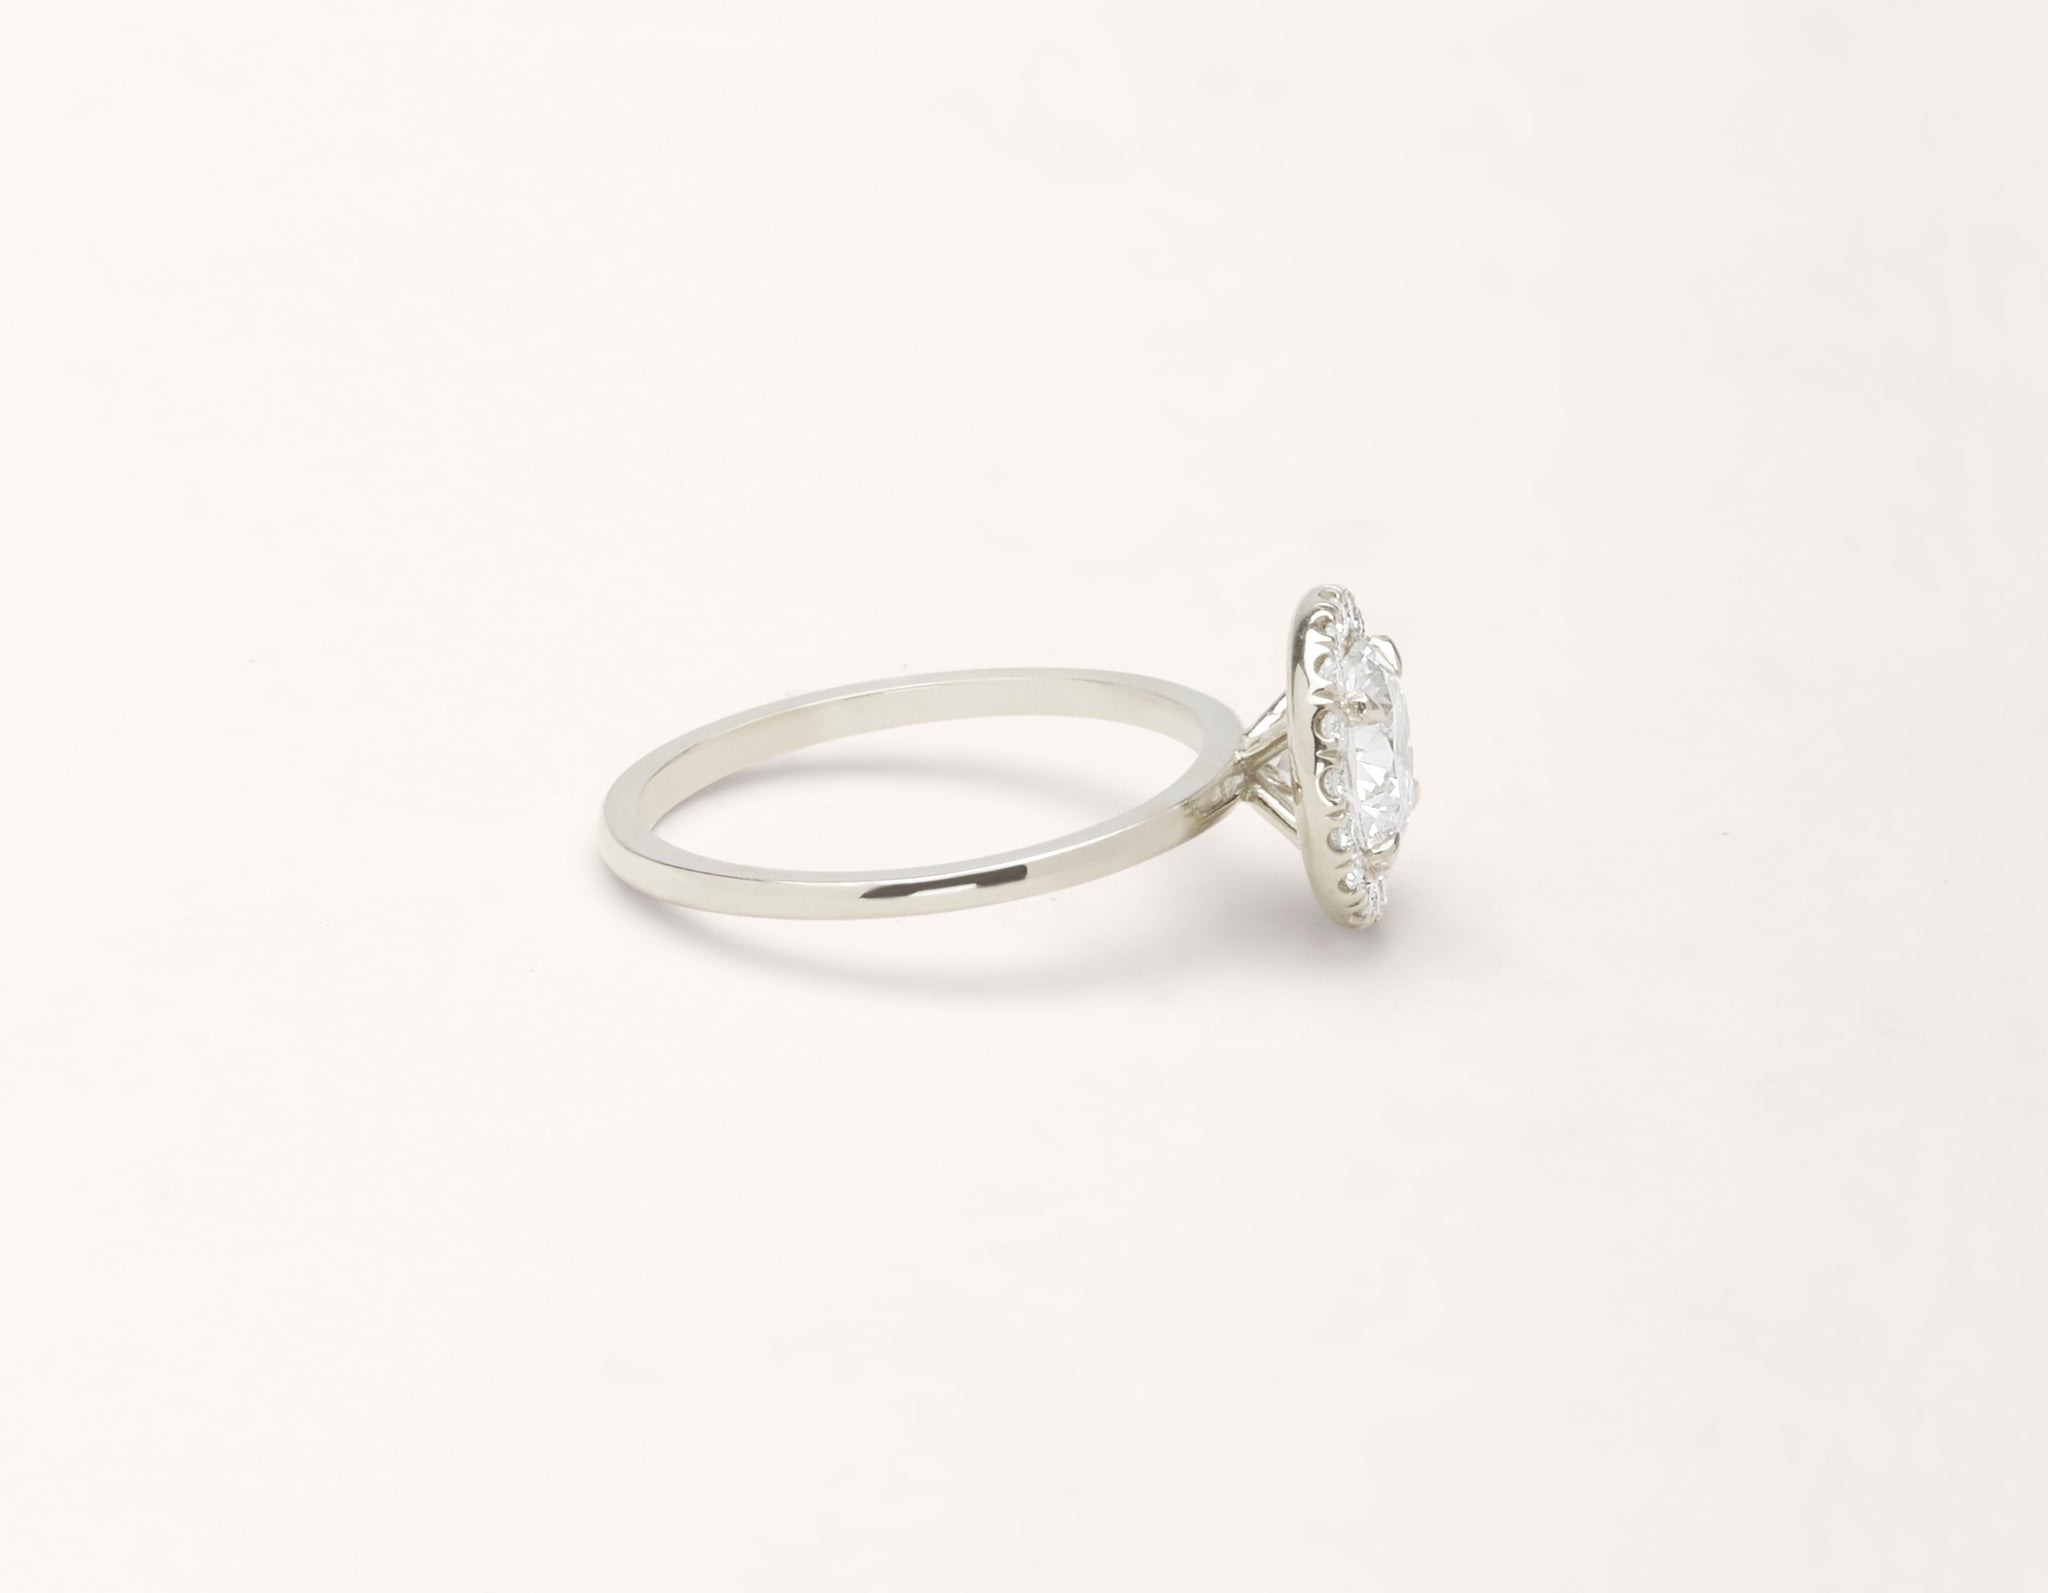 Vrai and Oro modern classic The Halo diamond engagement ring 18k solid white gold sustainable jewelry